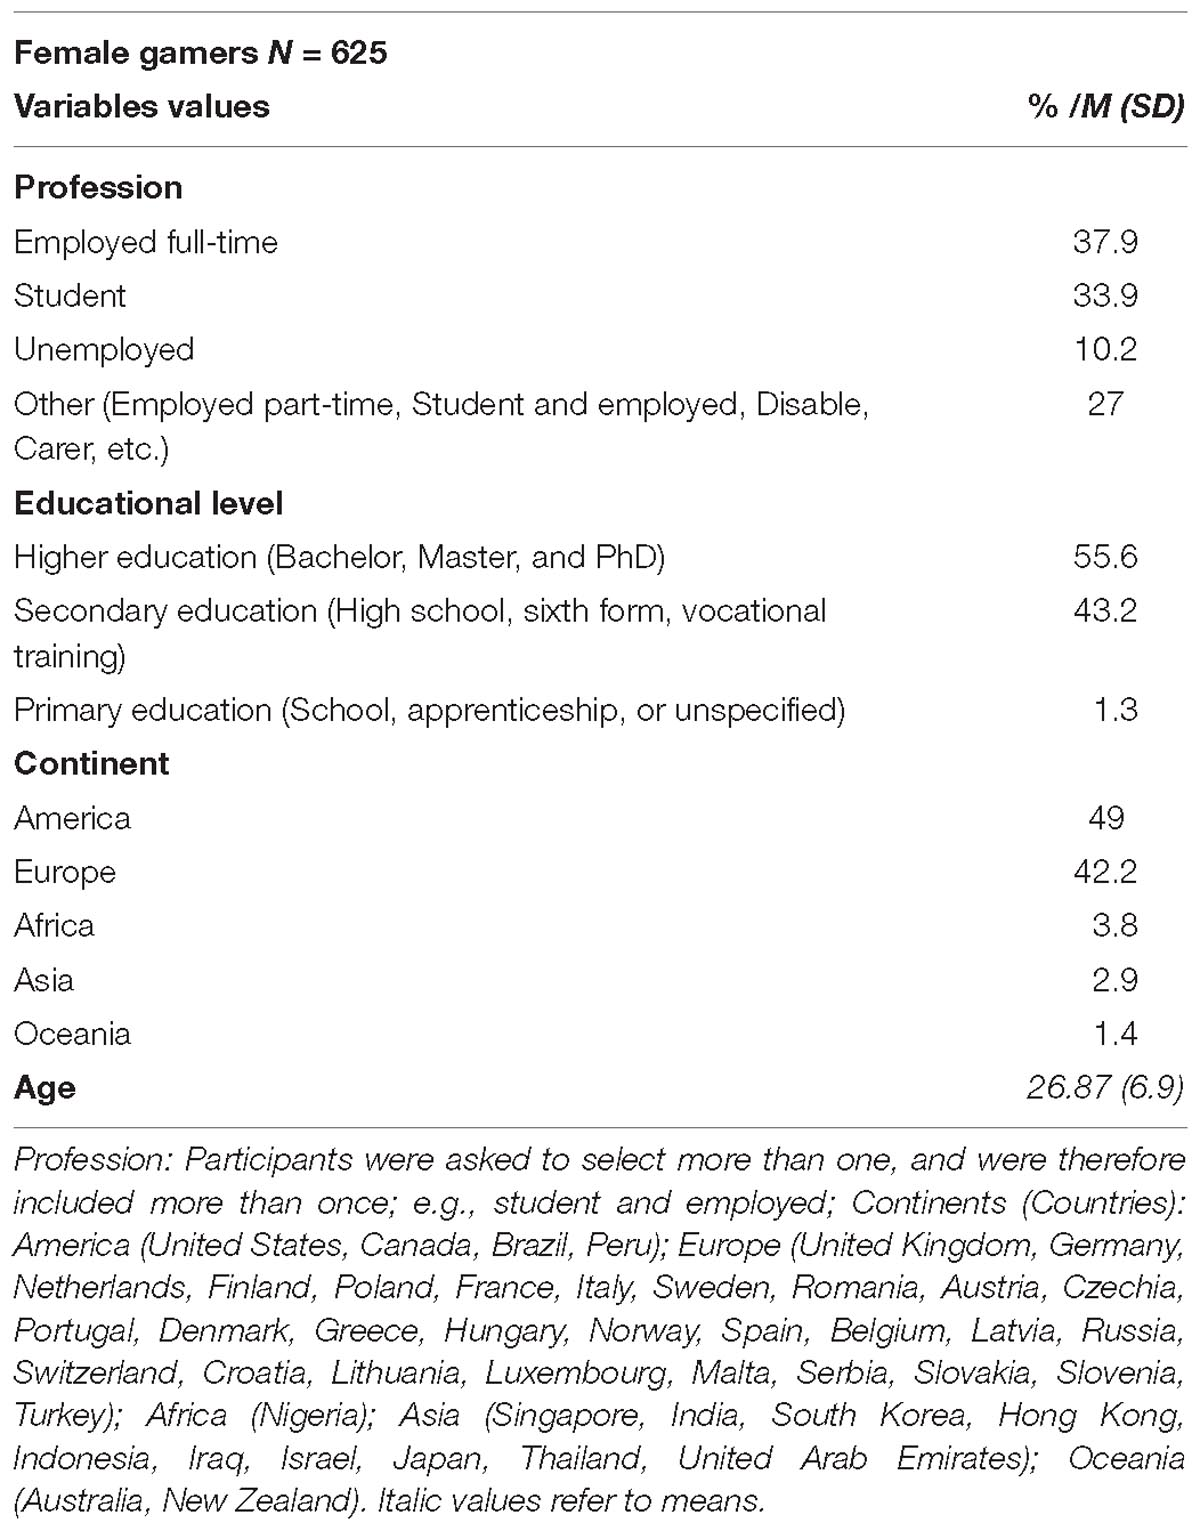 Frontiers | Measuring Female Gaming: Gamer Profile